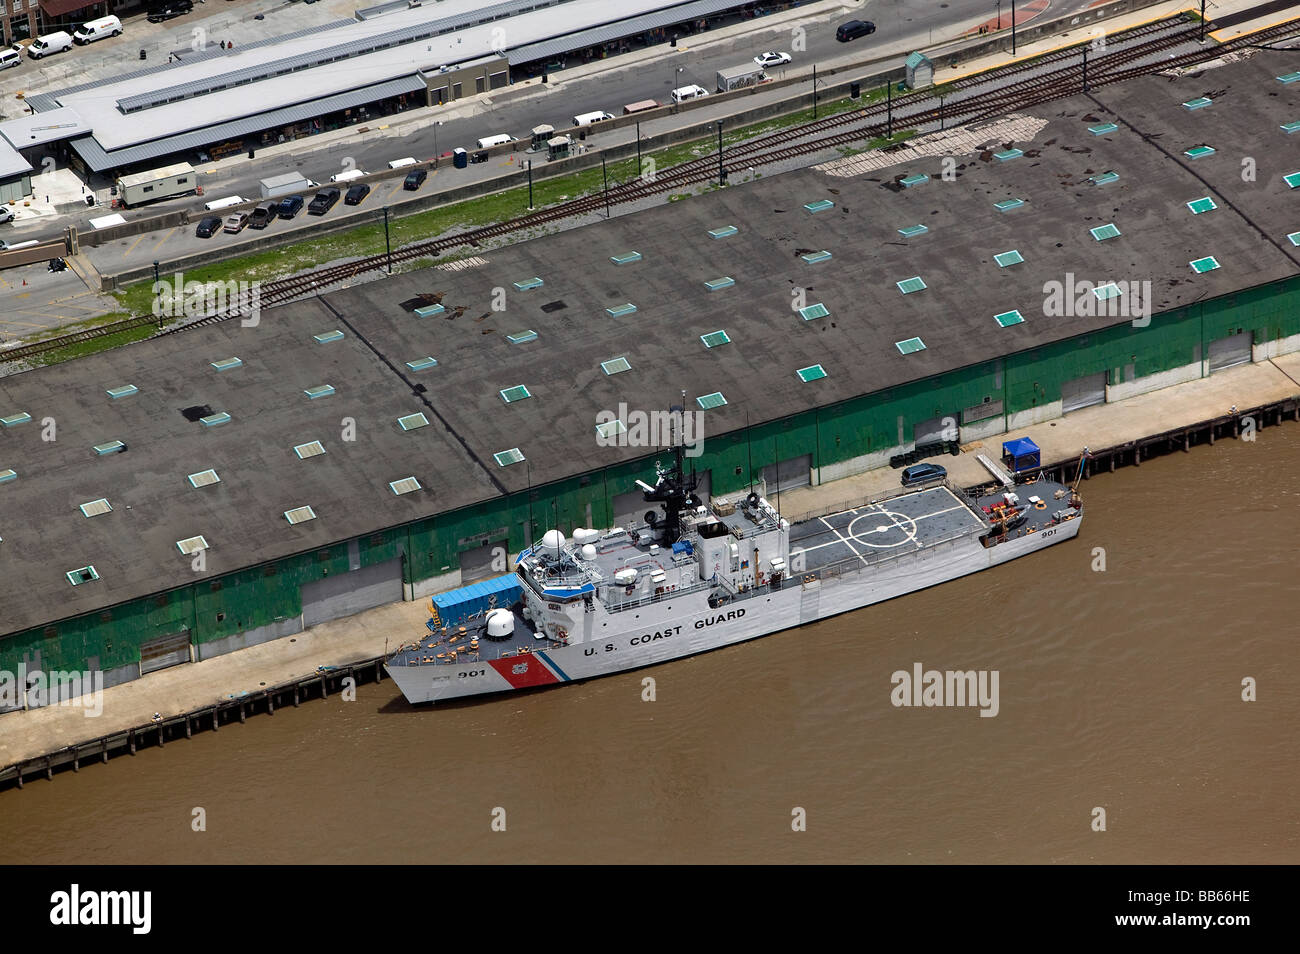 aerial view above docked united states coast guard uscg vessel mississippi river new orleans